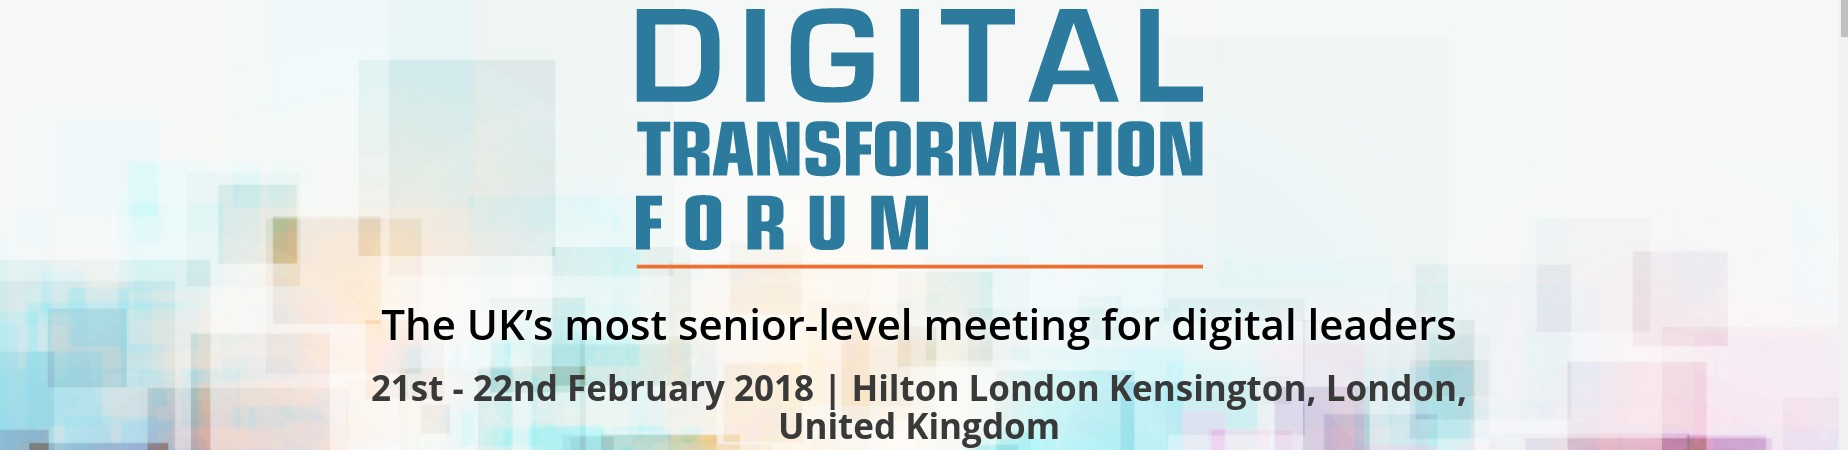 Digital Transformation crm conference